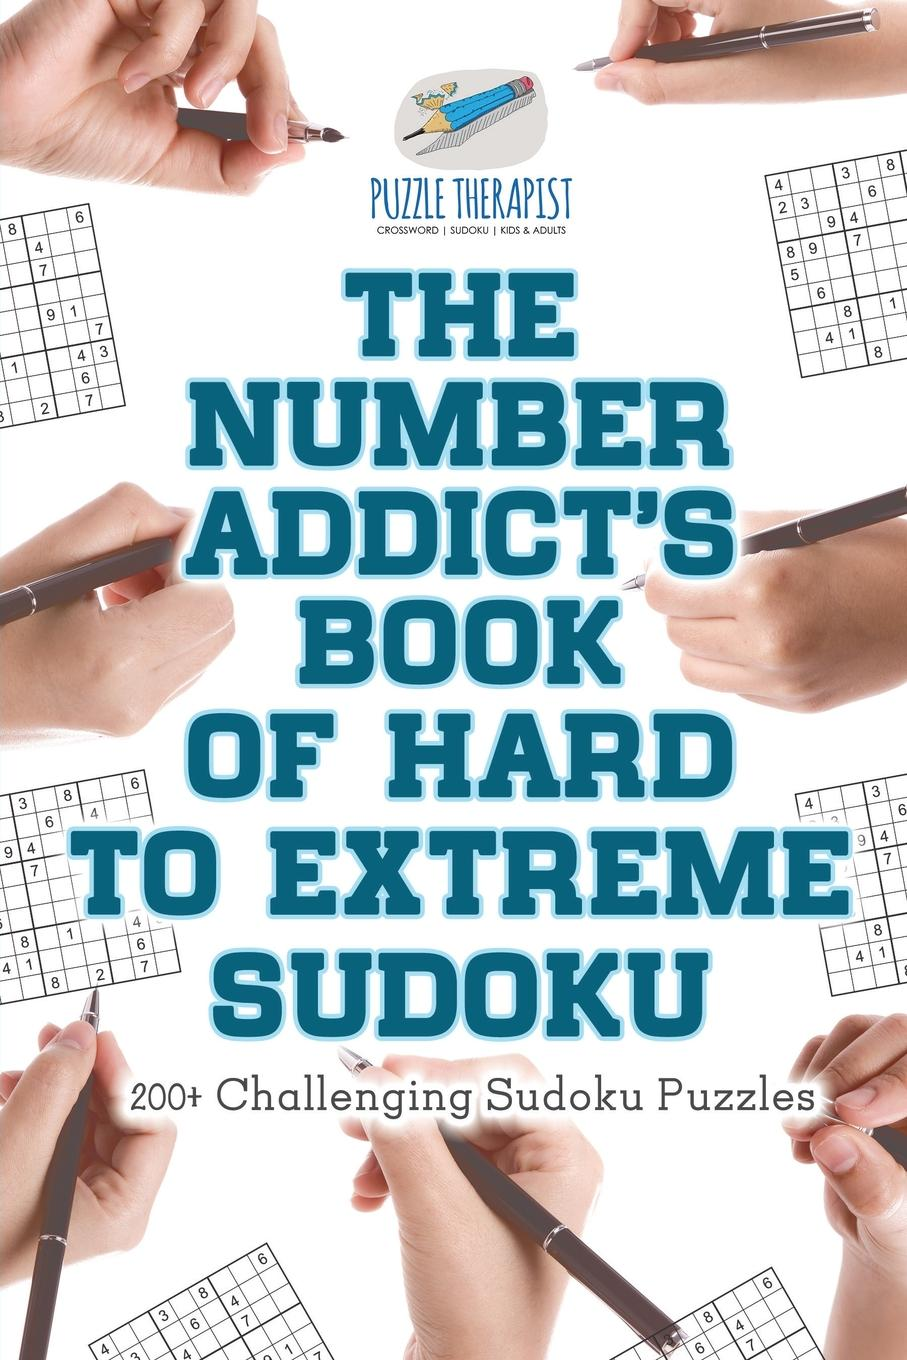 Puzzle Therapist The Number Addict.s Book of Hard to Extreme Sudoku . 200. Challenging Sudoku Puzzles puzzle therapist the number addict s book of hard to extreme sudoku 200 challenging sudoku puzzles